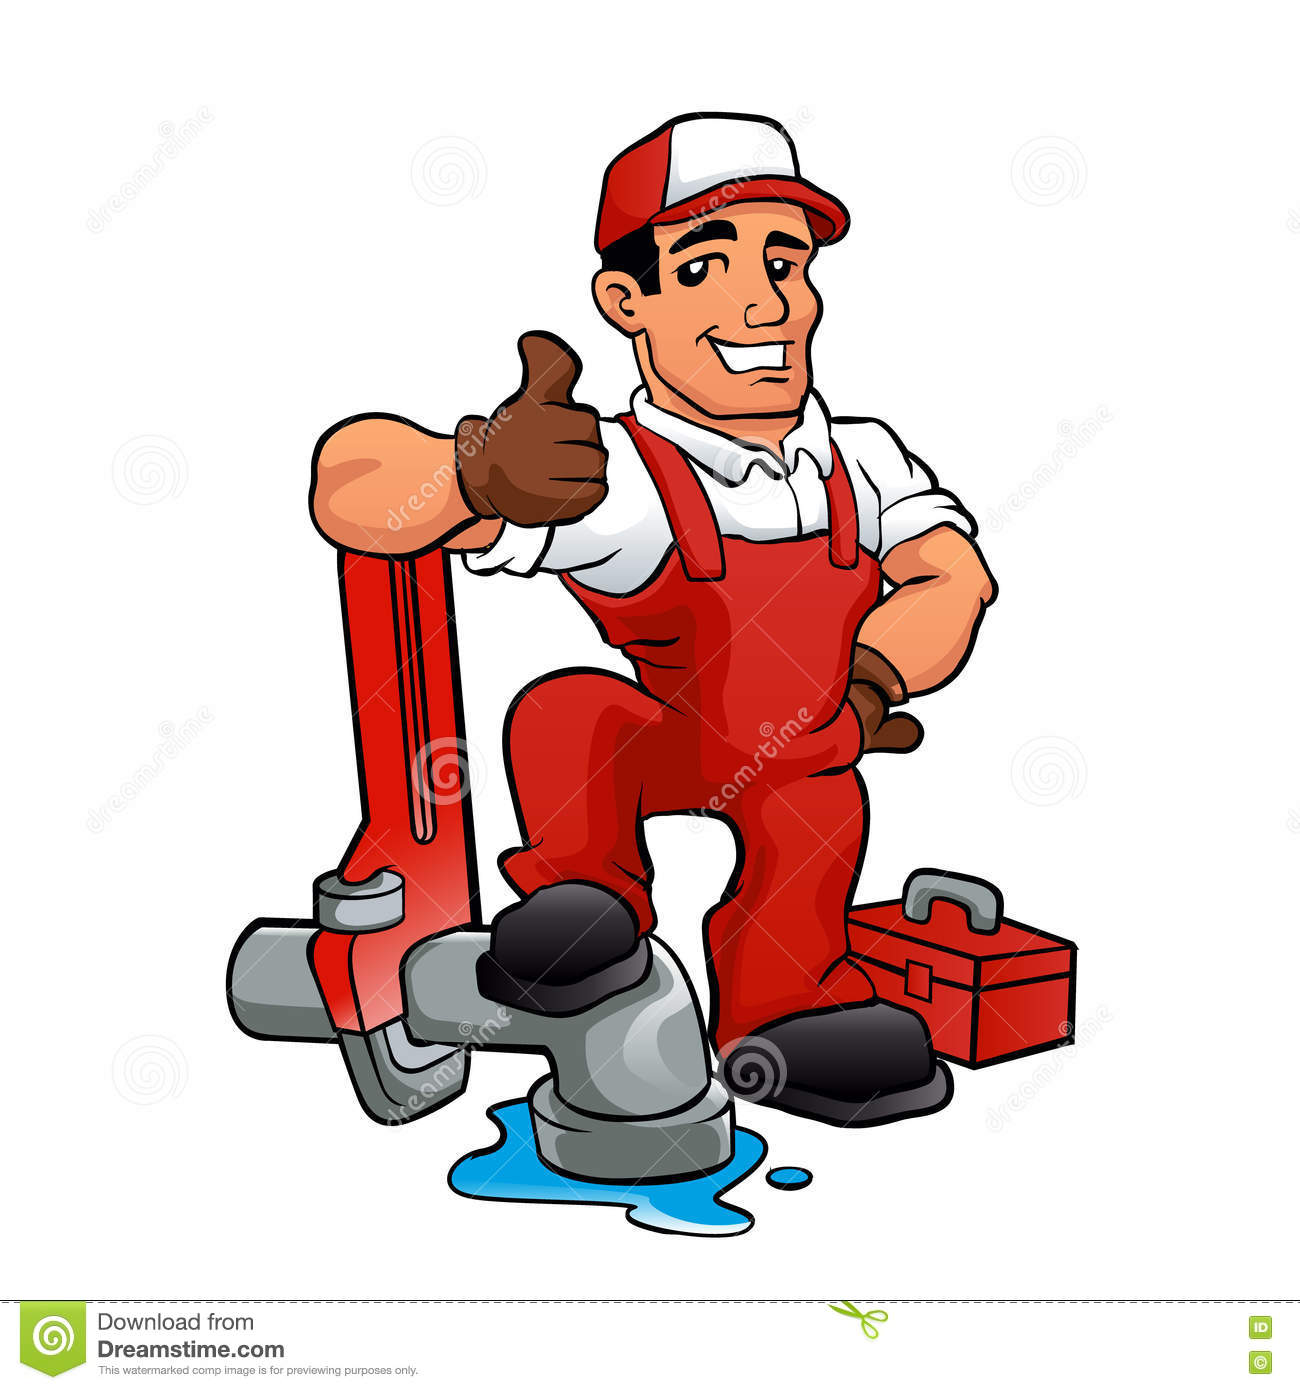 Cartoon Plumber Holding A Big Wrench Stock Vector